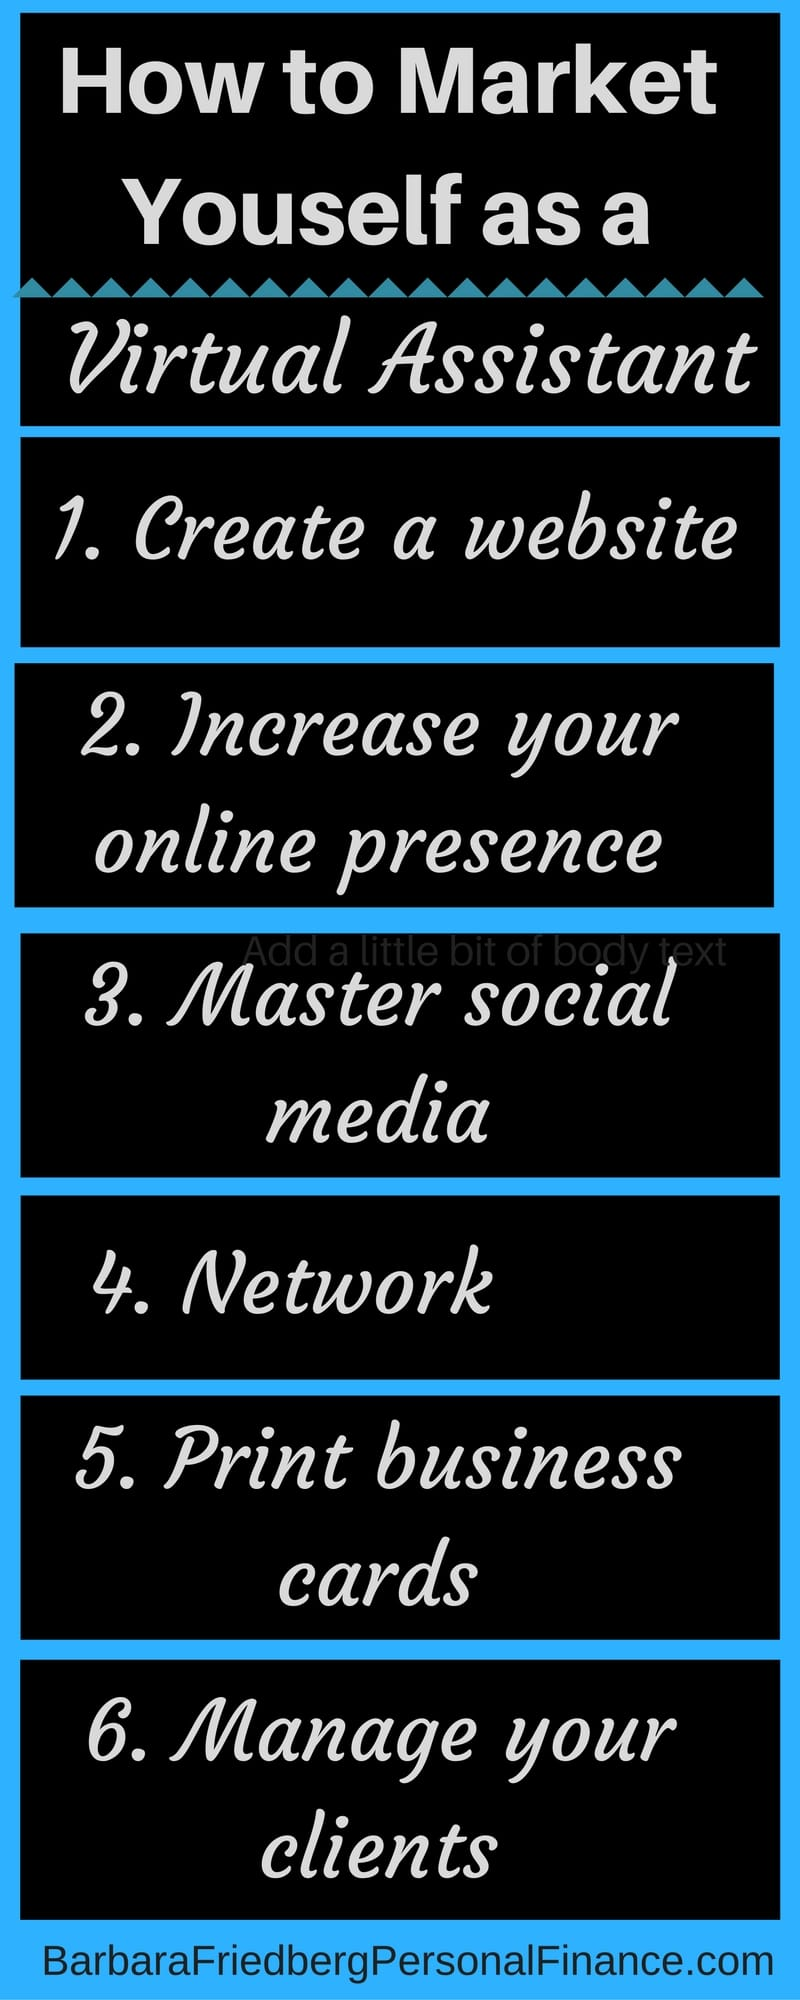 Best Virtual Assistant Marketing Tips-How to Become a VA-Part 2